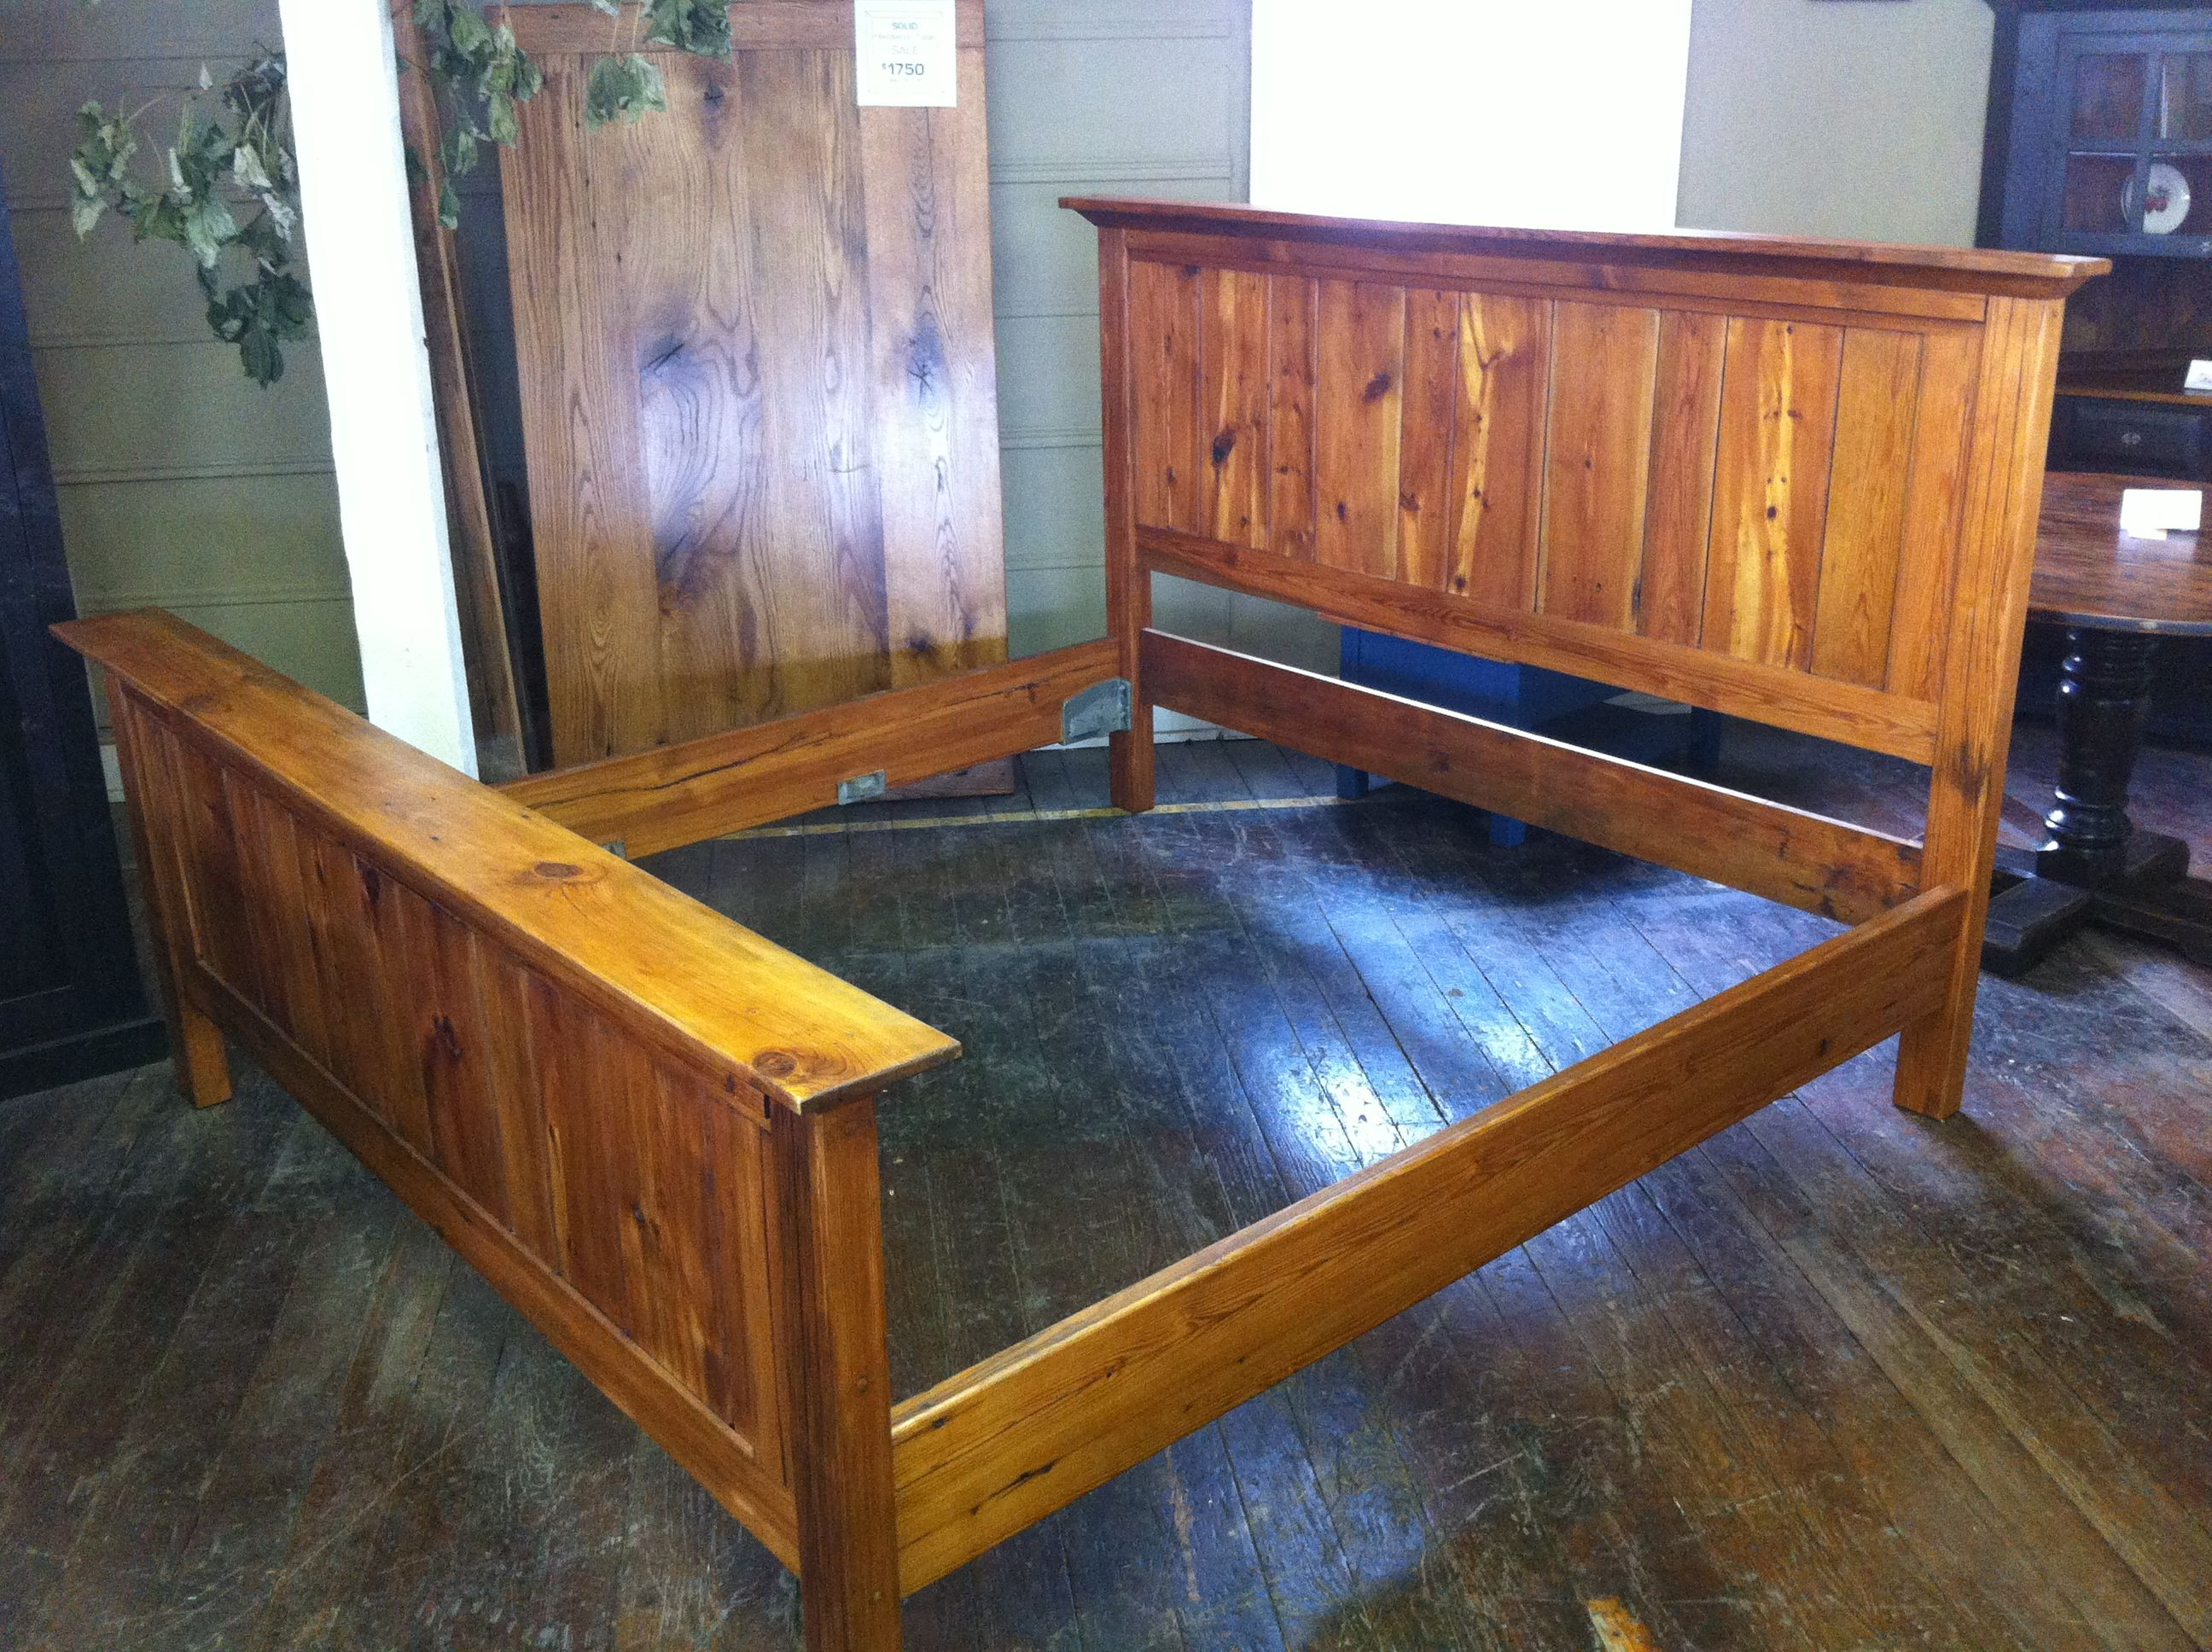 Barn Wood Bed. Reclaimed Barn Wood Furniture, Handmade In Lancaster County,  PA.